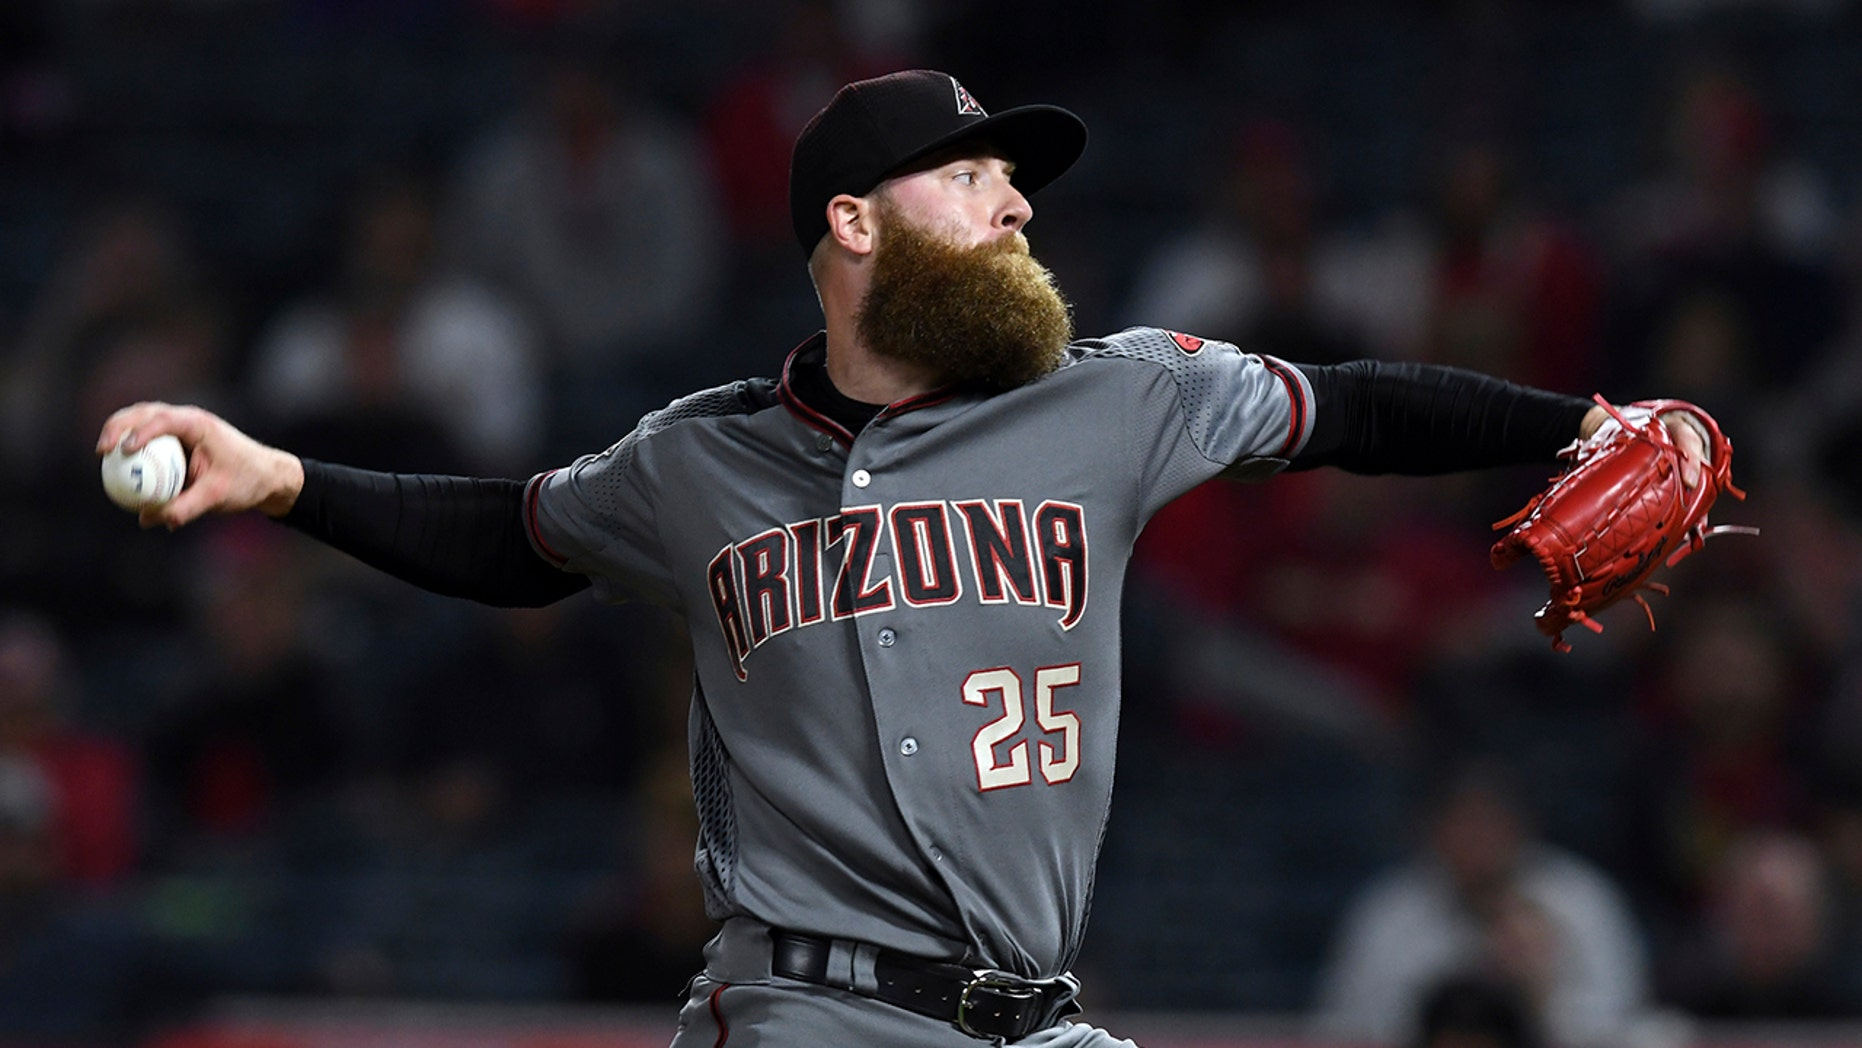 Archie Bradley revealed an embarrassing moment he had this season.